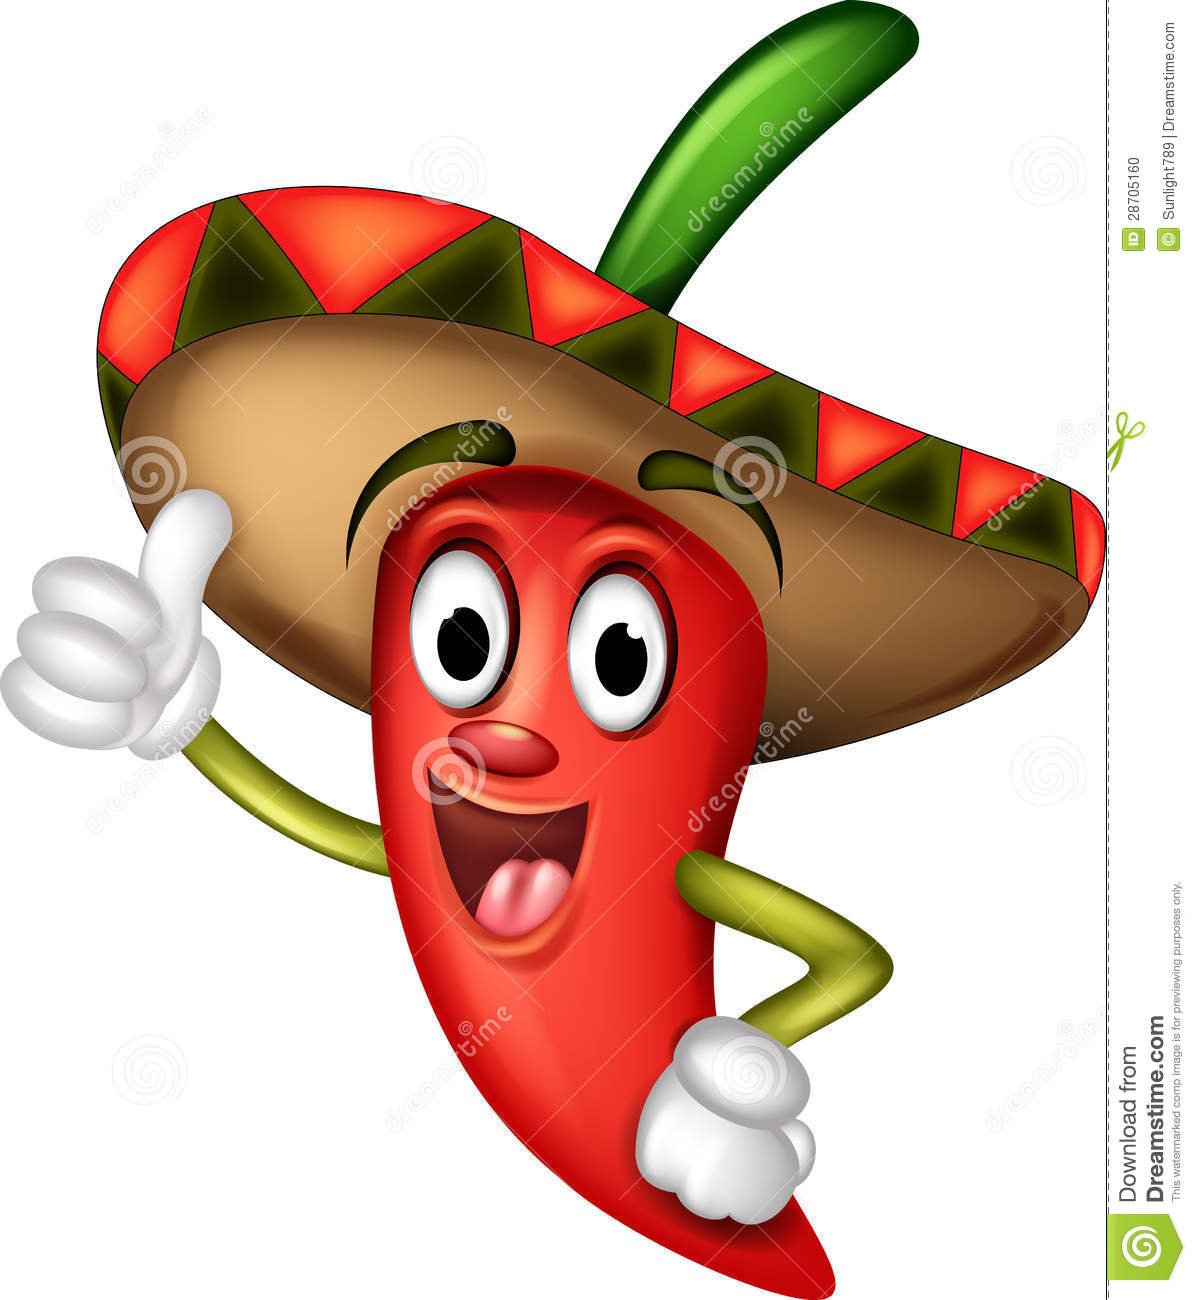 Chili Pepper Cartoon Thumbs Up Stock Photo - Image: 28705160